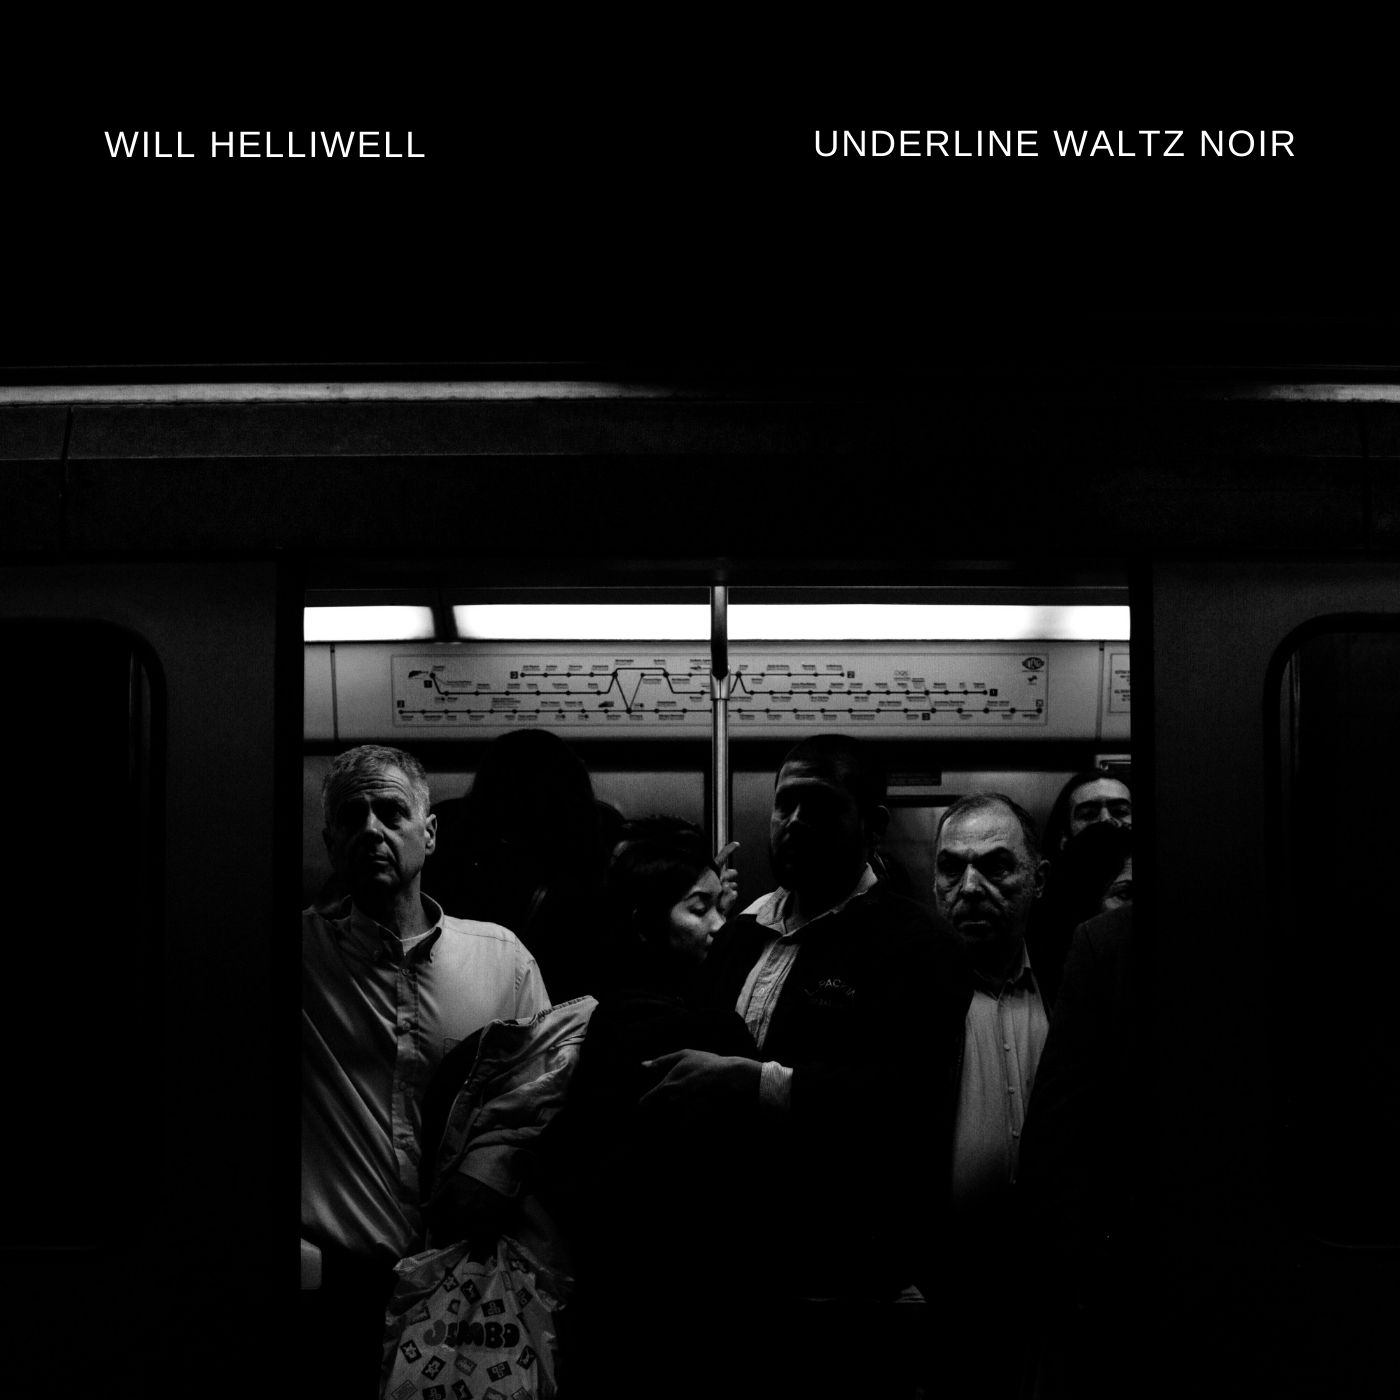 Underline Waltz Album Cover